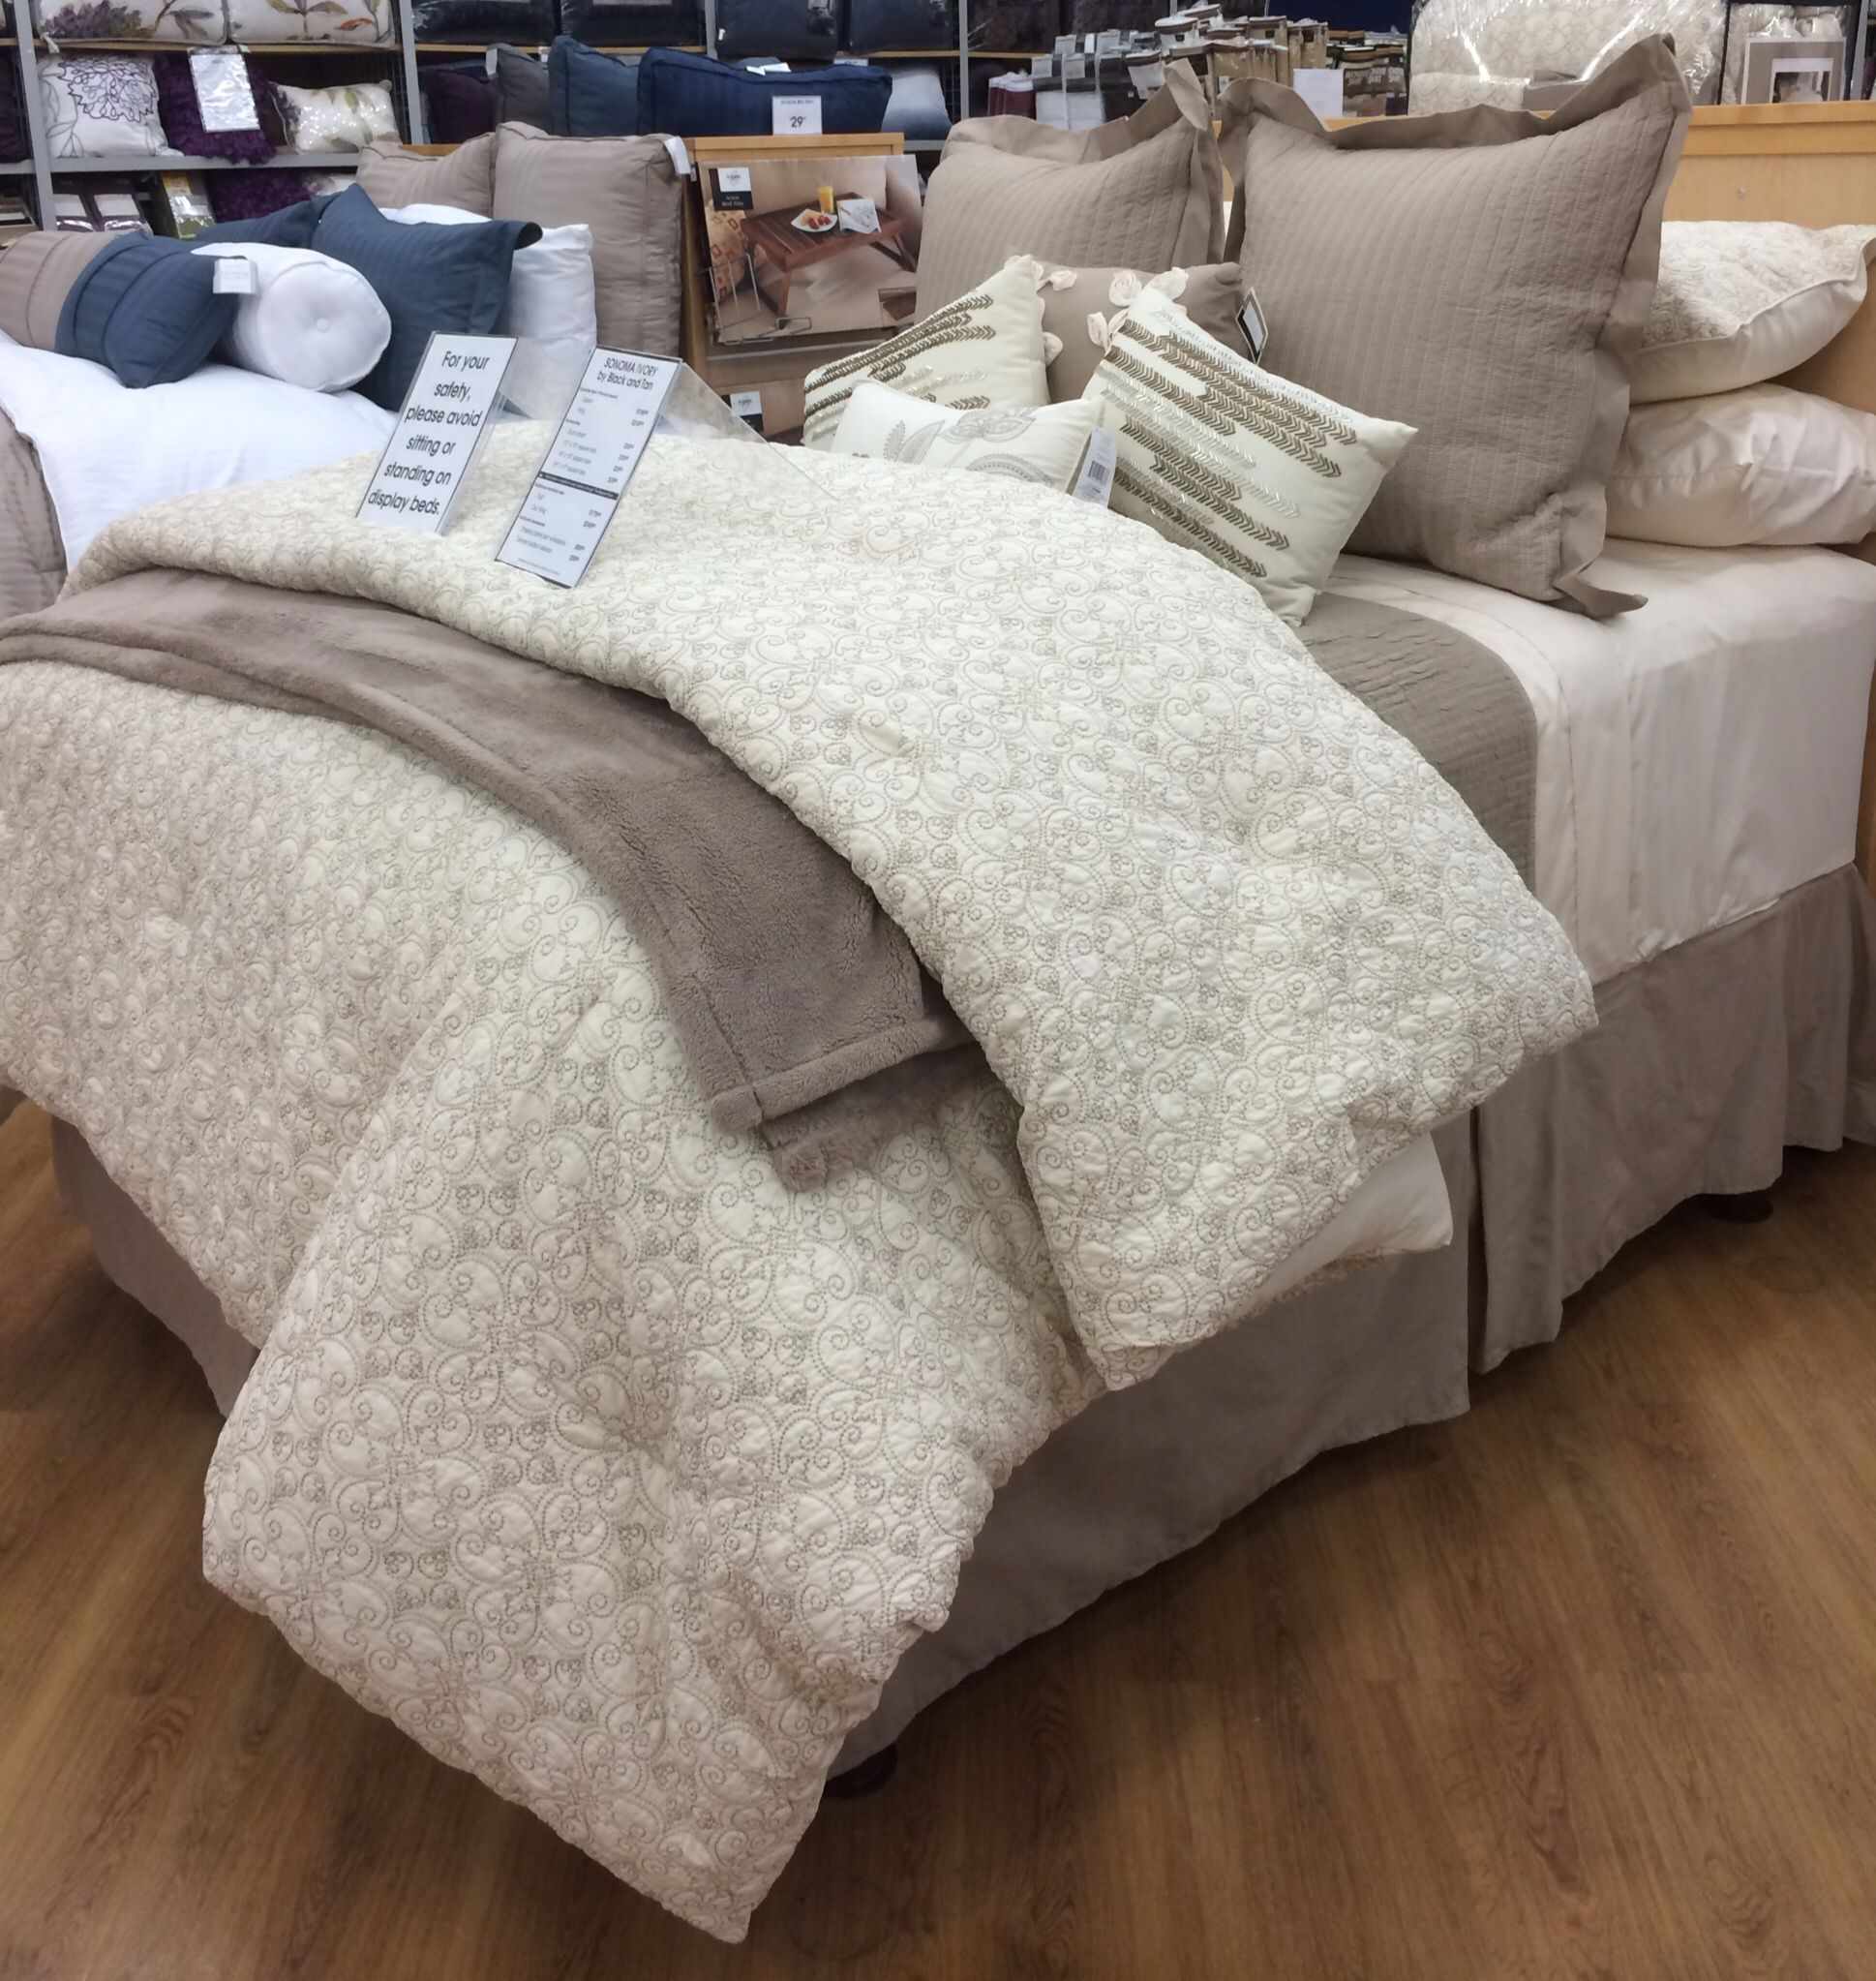 Bed bath and beyond lakewood - Sonoma Ivory Bed Bath Beyond